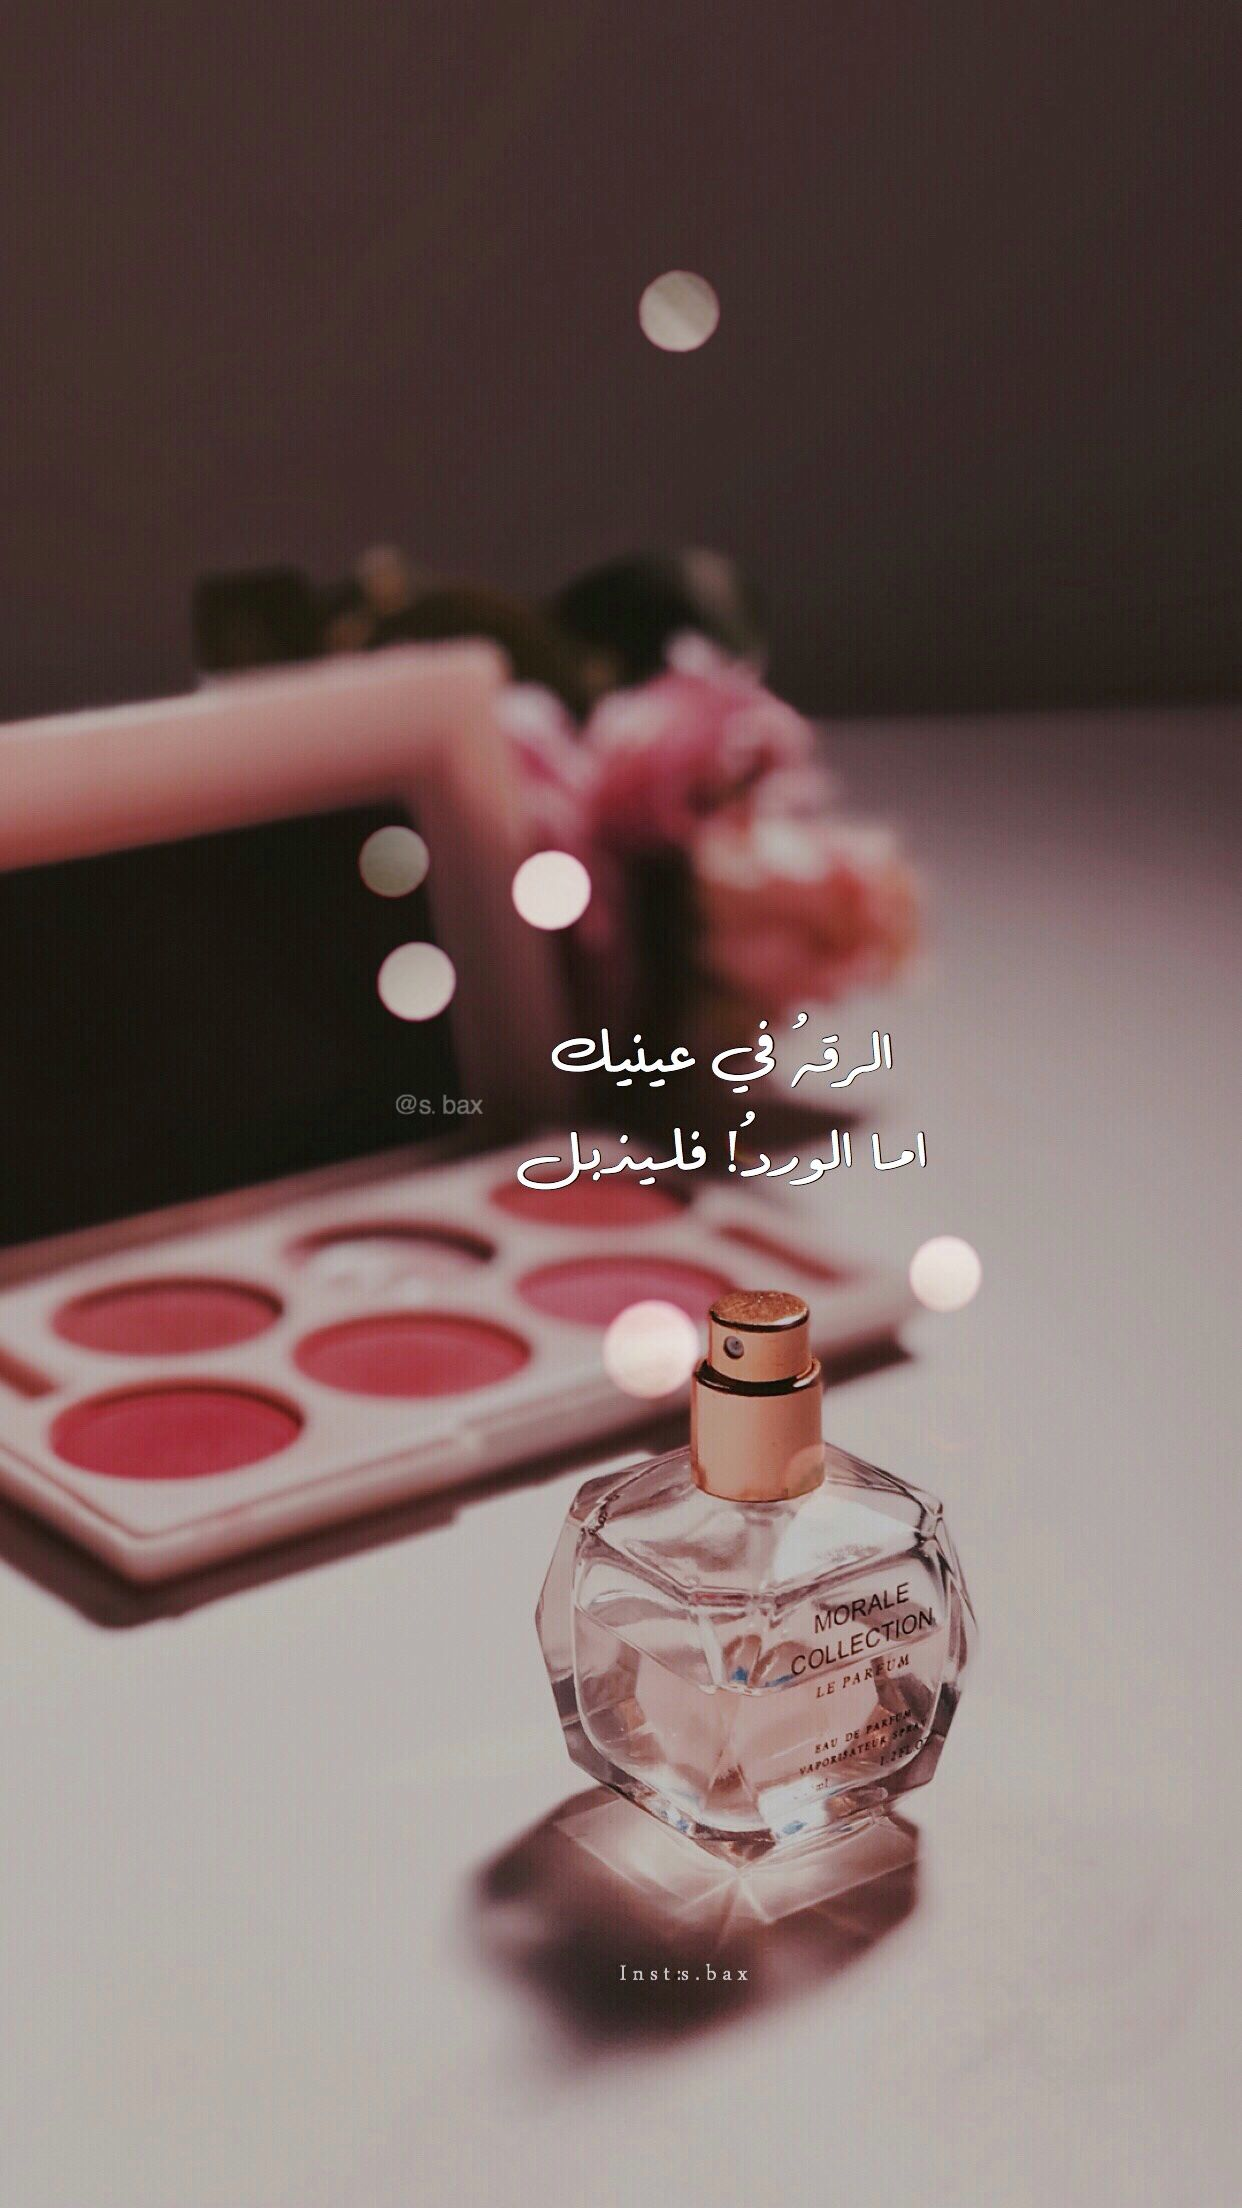 صور رمزيات انستقرام سناب عطر مكياج S Bax Love Quotes Wallpaper Iphone Wallpaper Quotes Love Arabic Quotes